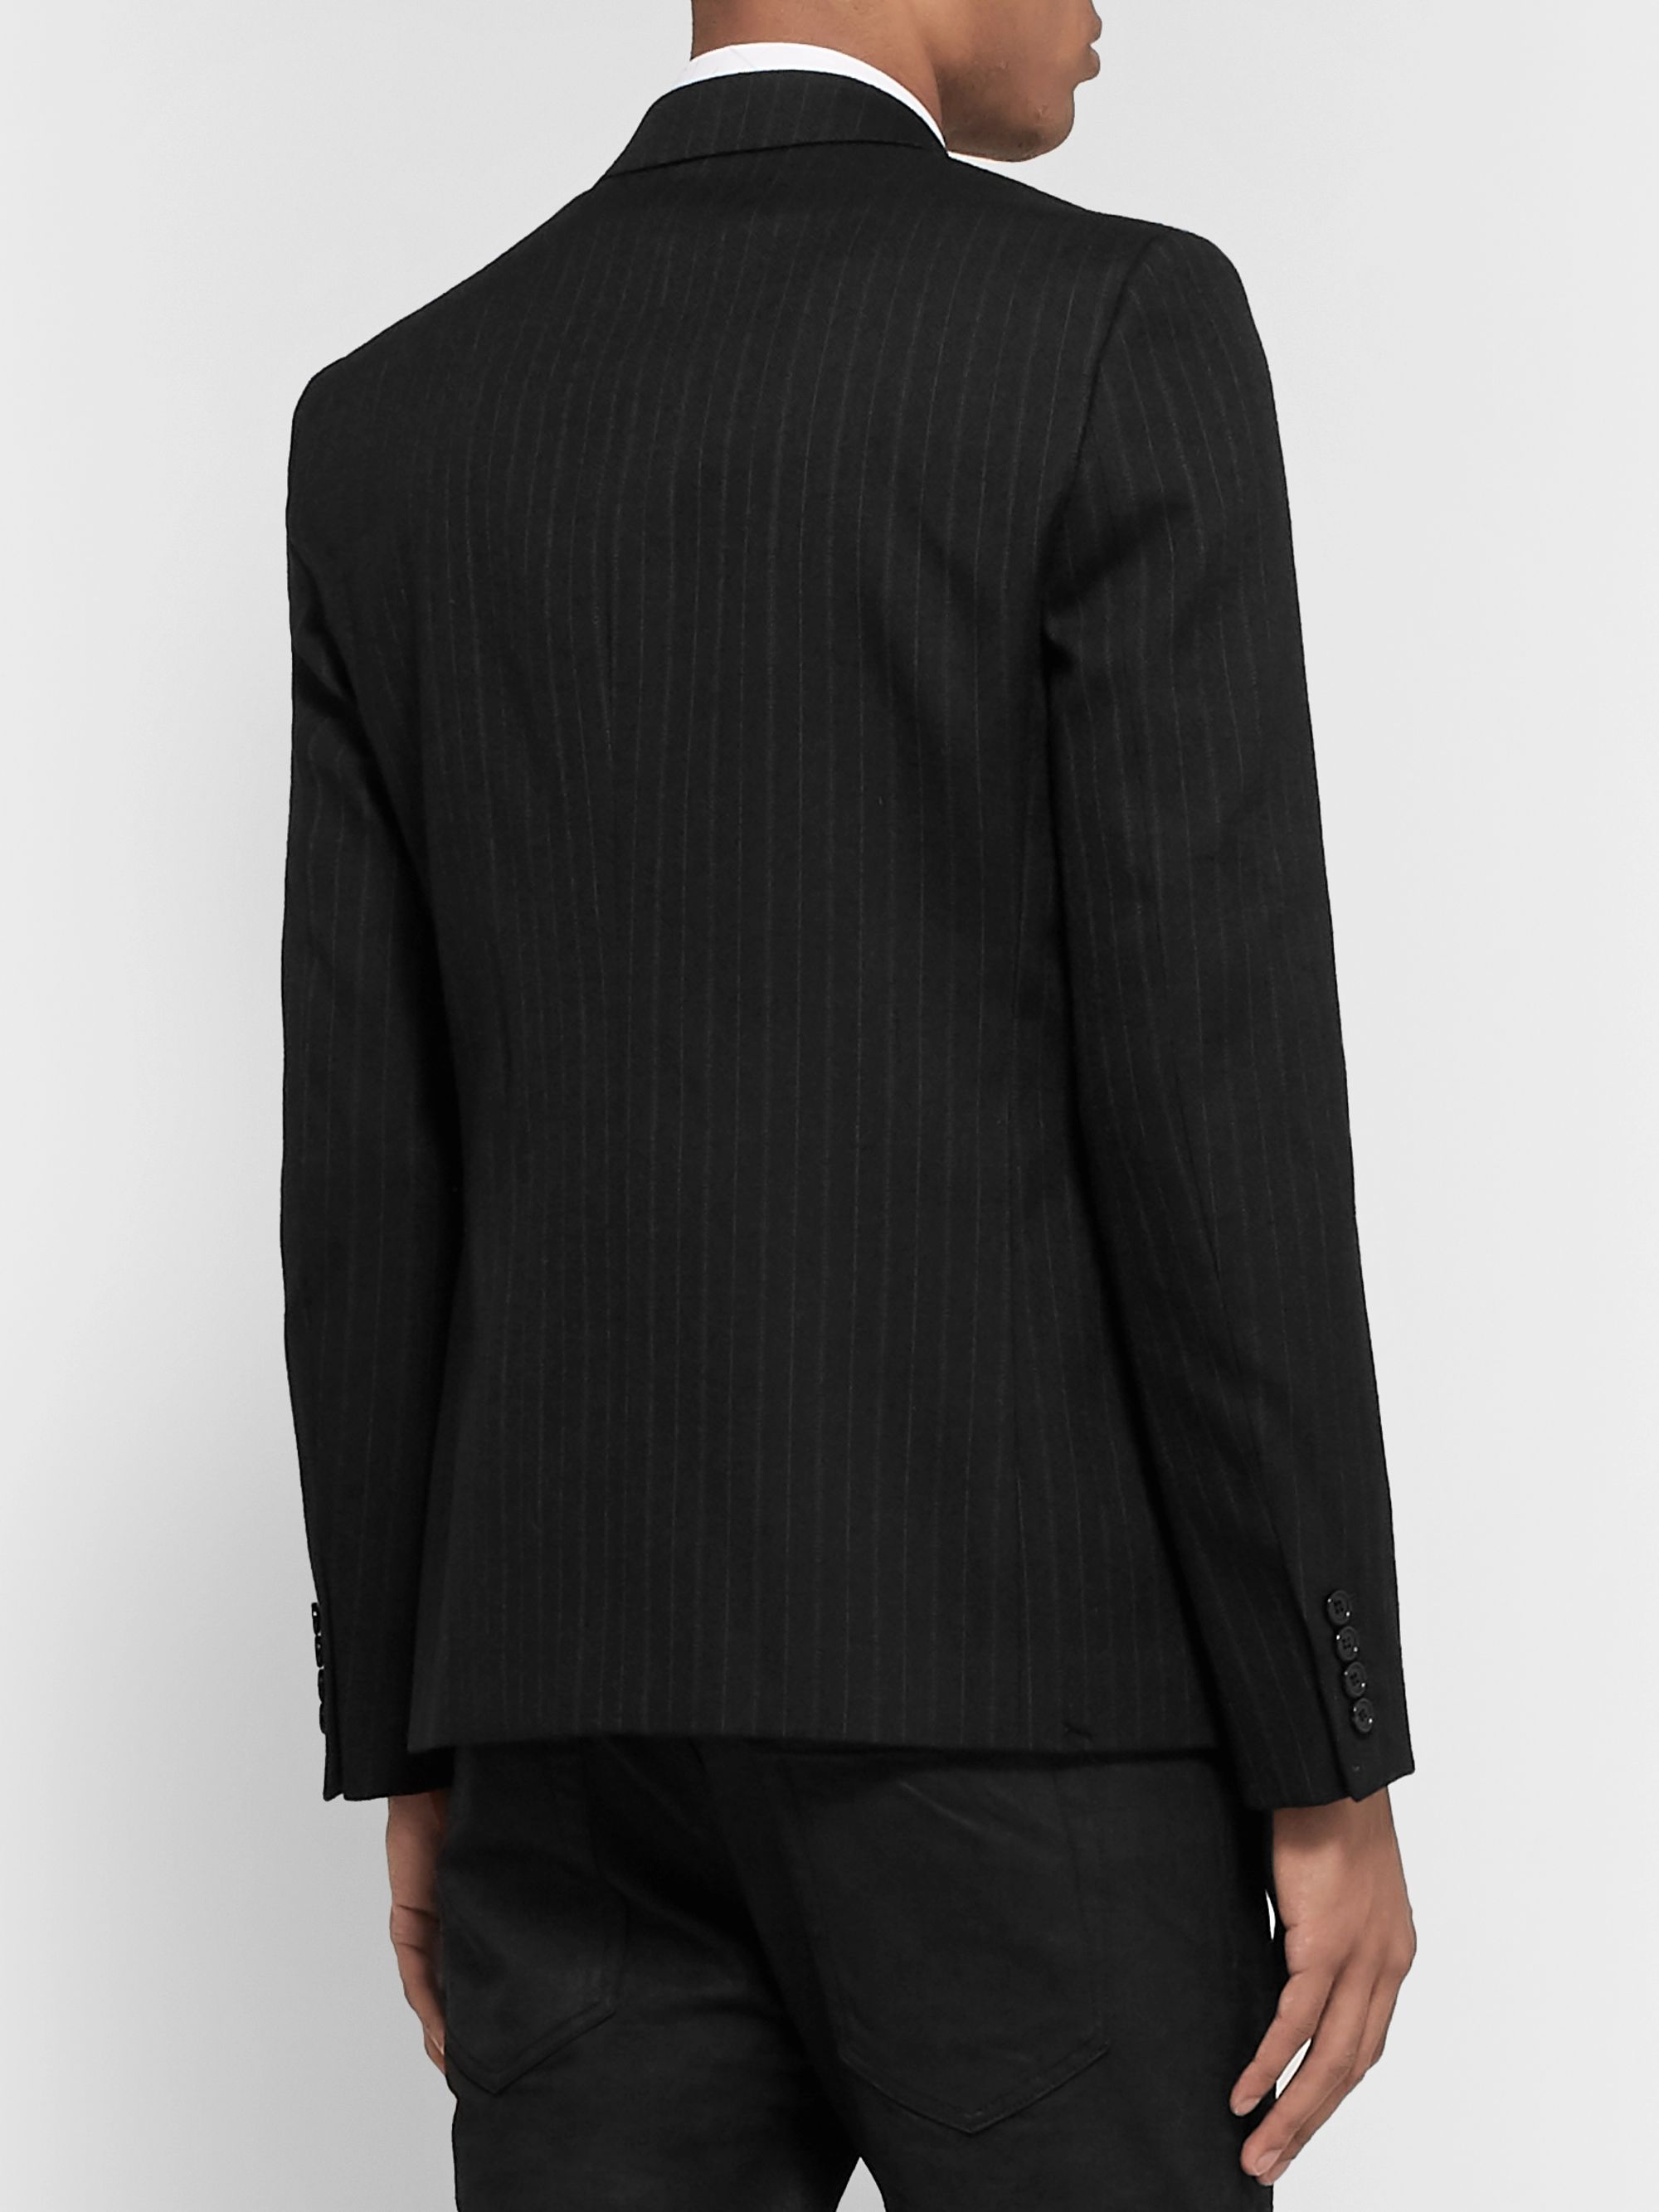 SAINT LAURENT Black Slim-Fit Double-Breasted Pinstriped Wool-Blend Blazer